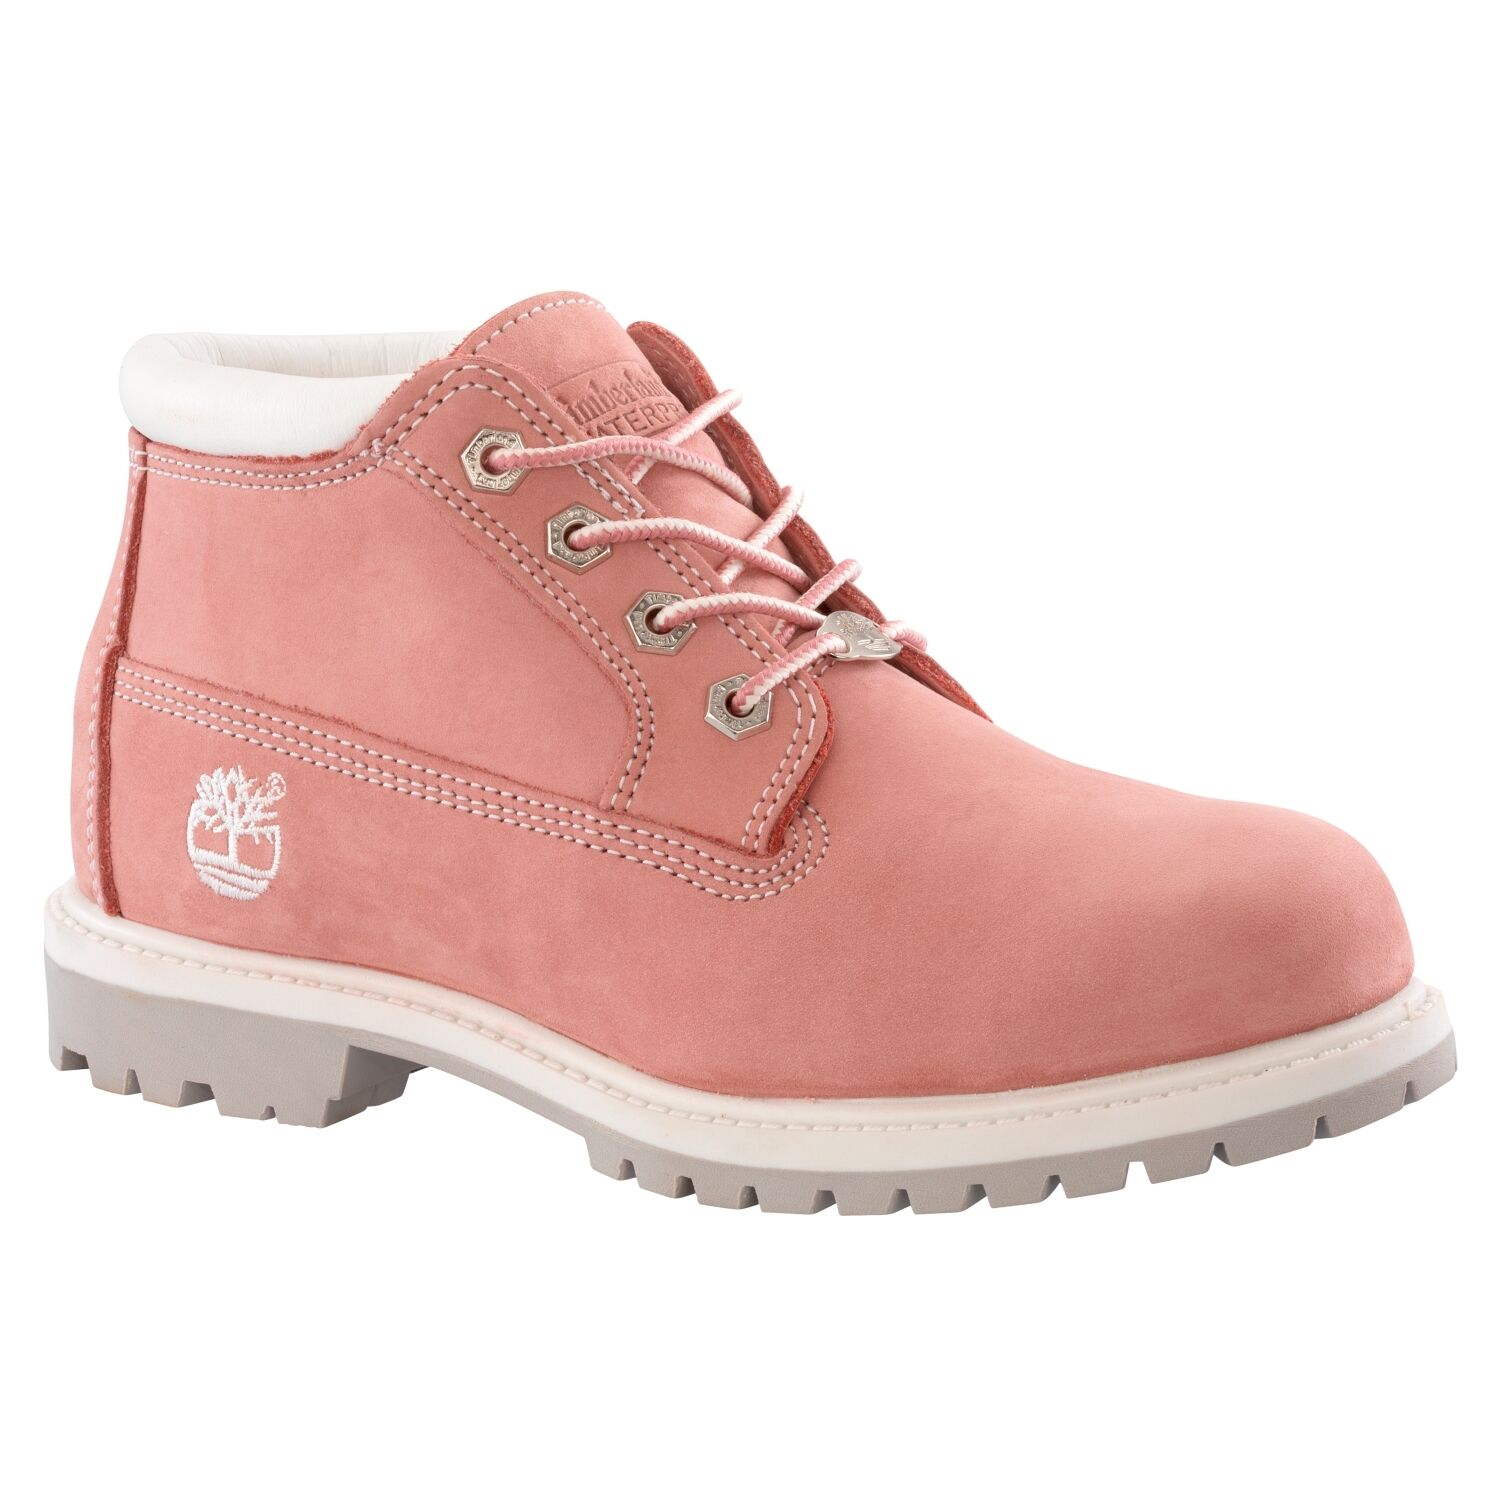 Timberland Nellie Womens Size 9 Pink Leather Chukka BOOTS UK 7 EU 40 f0f17fb209